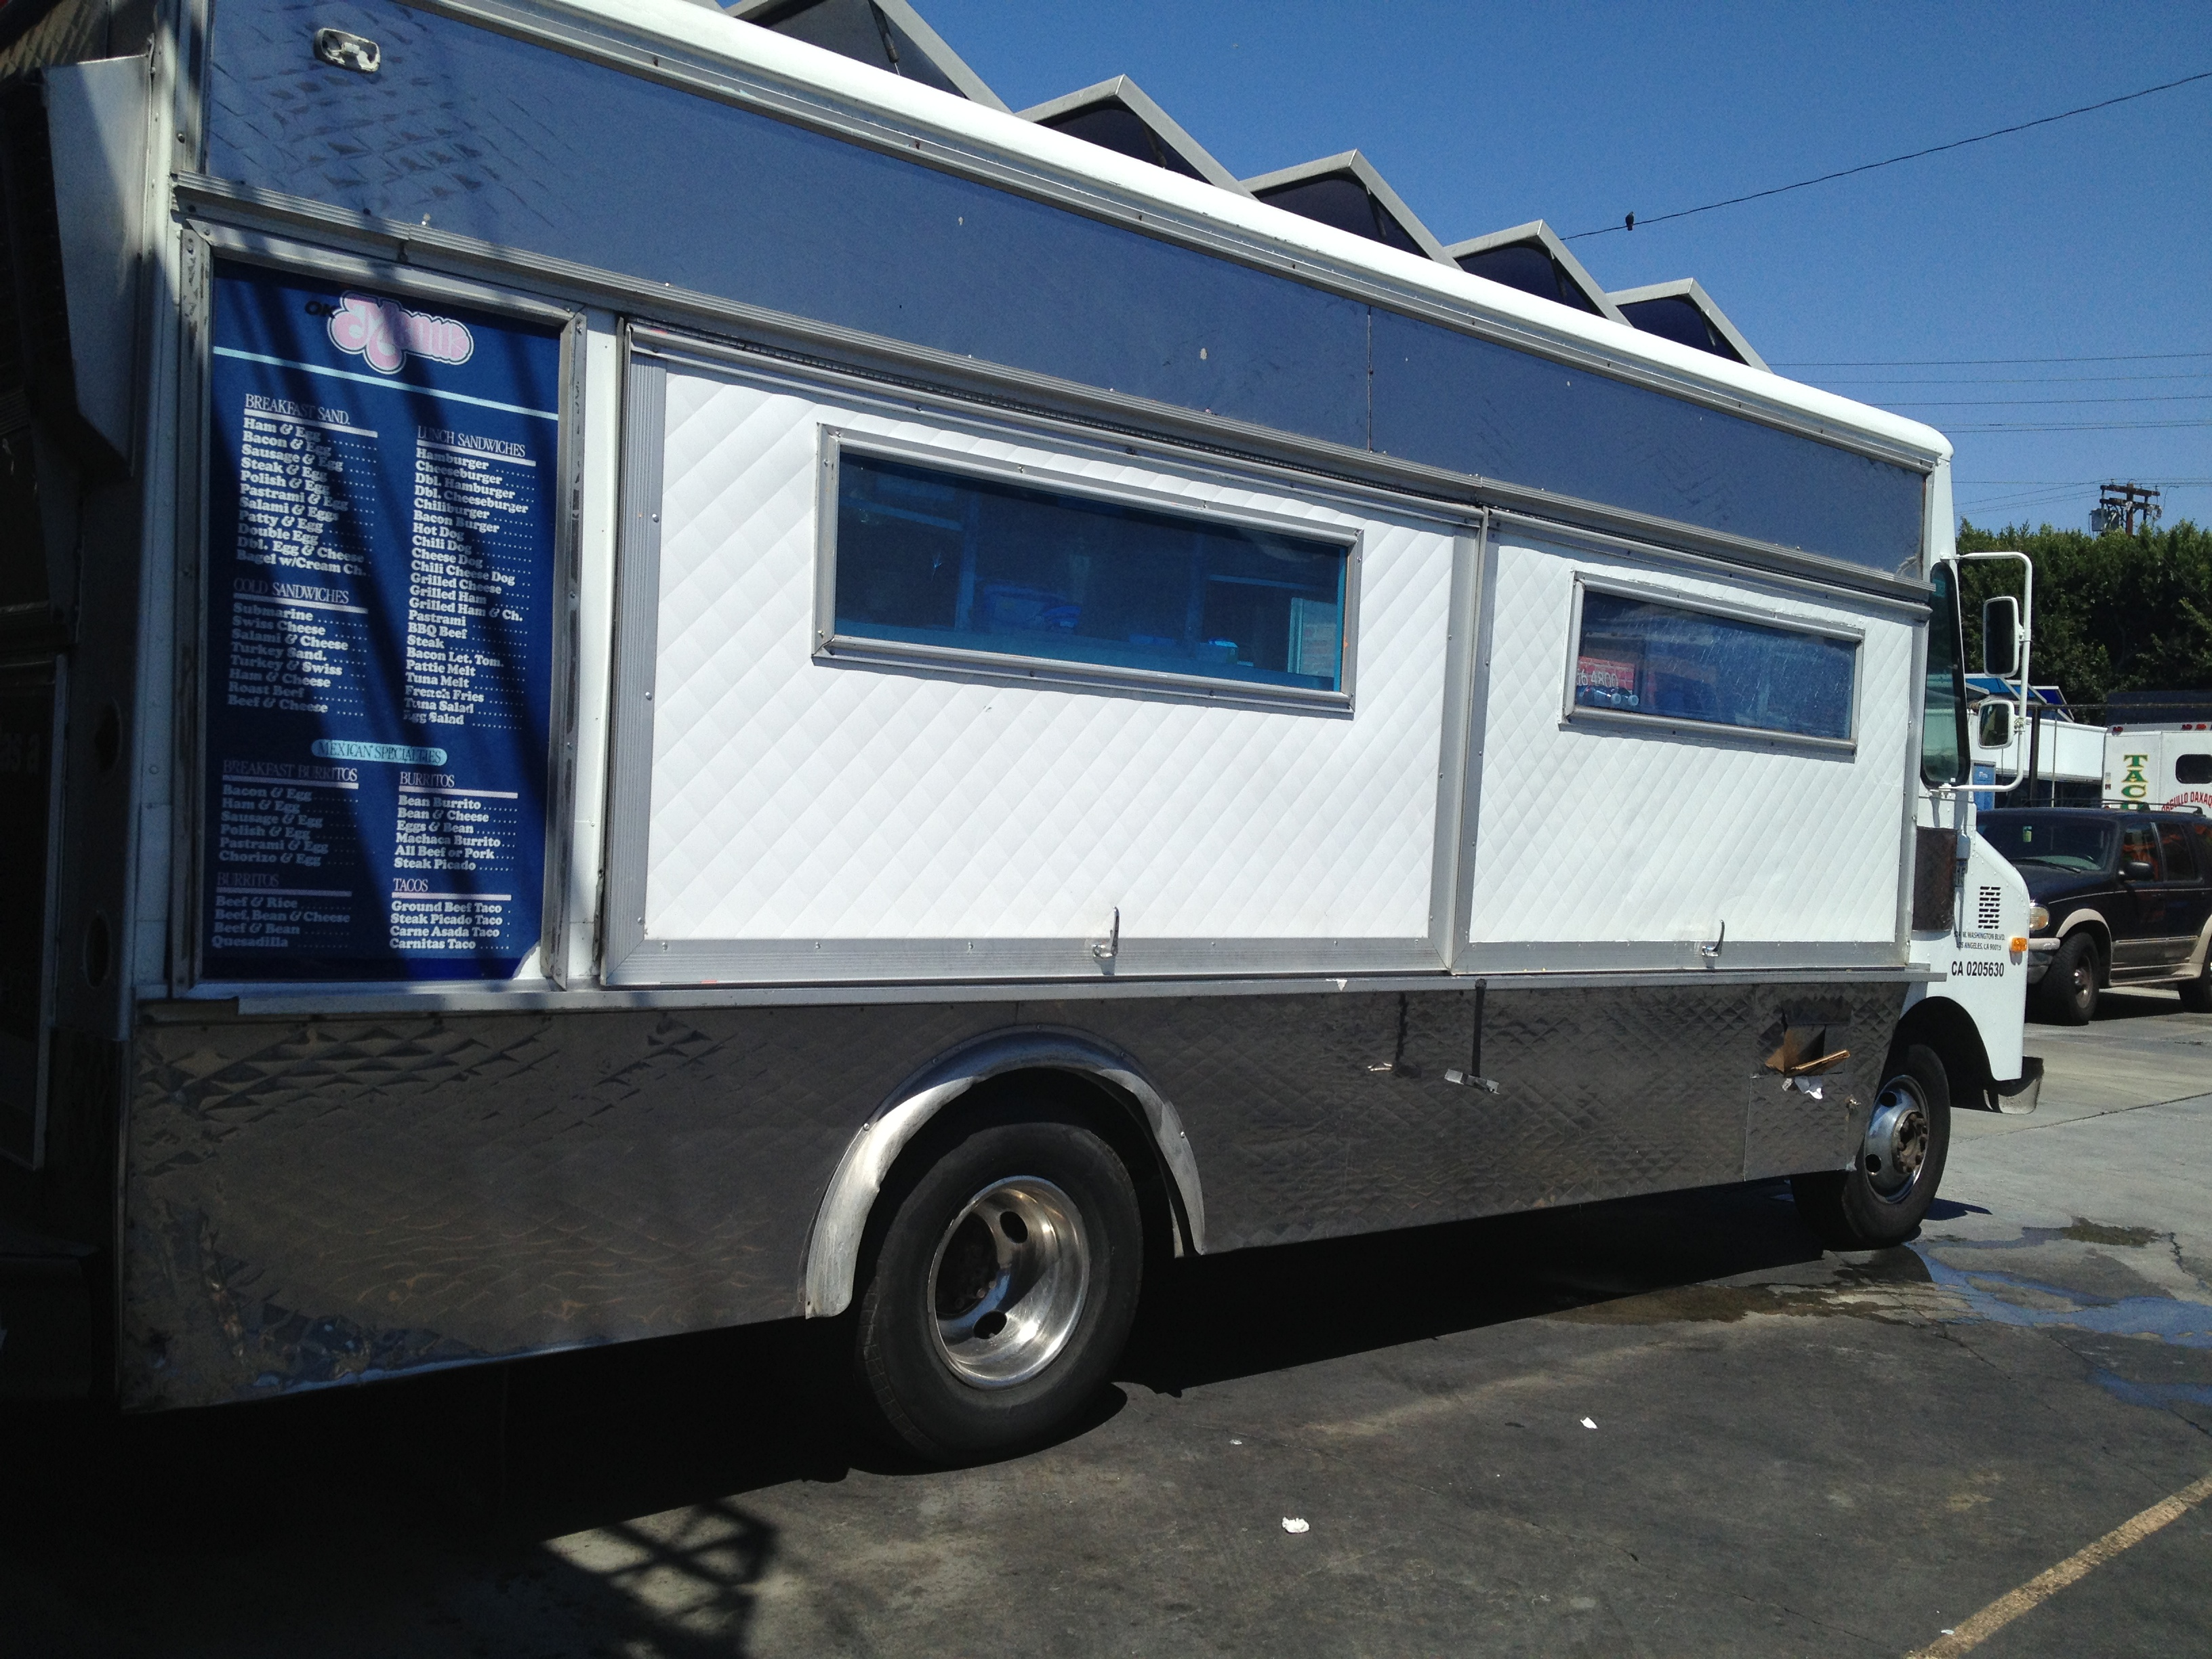 lunch catering truck for rent. Black Bedroom Furniture Sets. Home Design Ideas